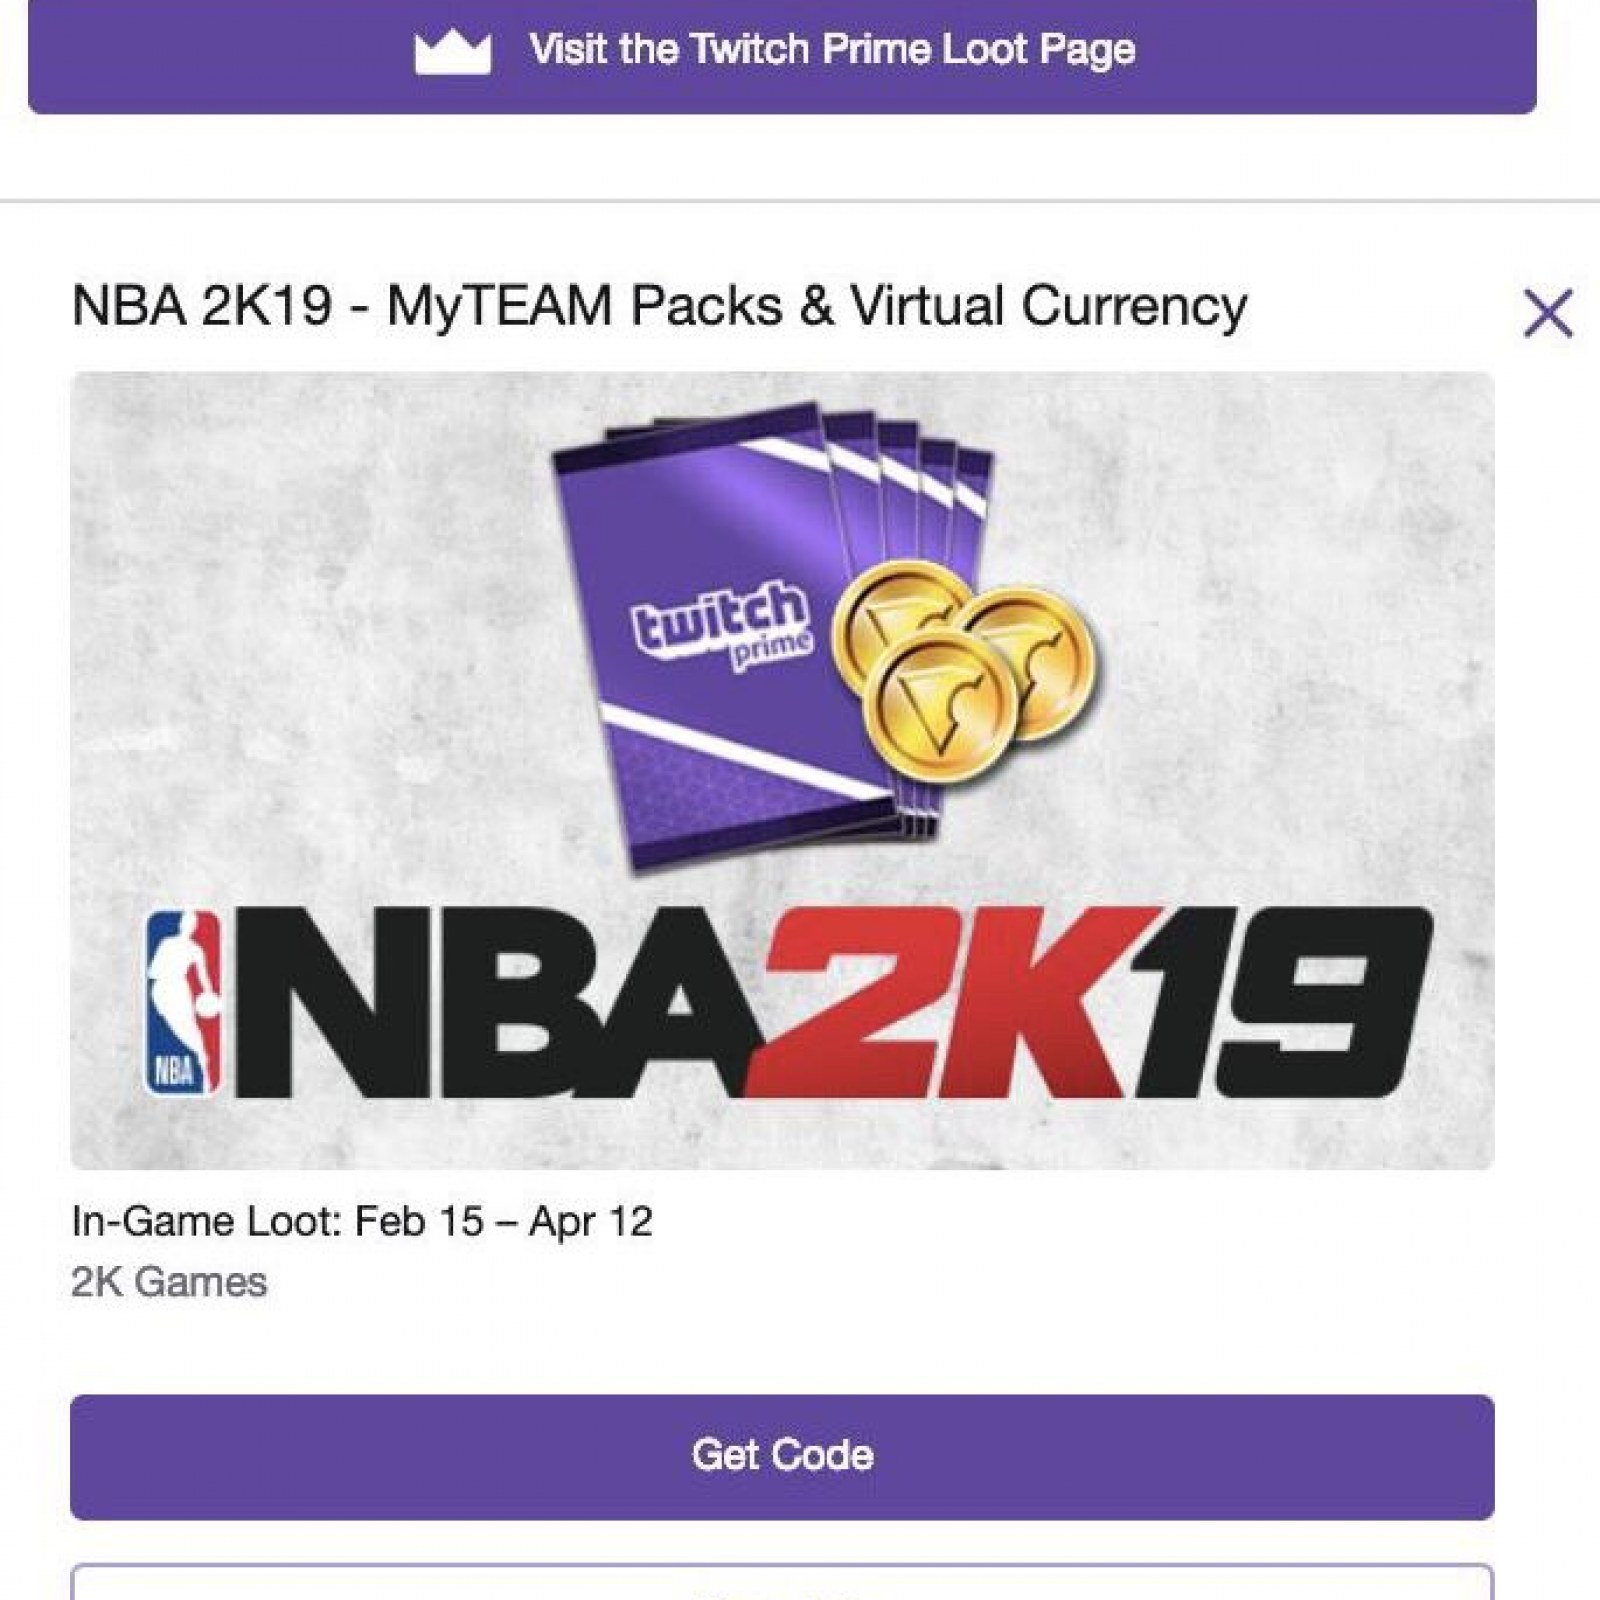 NBA 2K19' Twitch Prime Loot - How to Get Free VC & MyTeam Packs